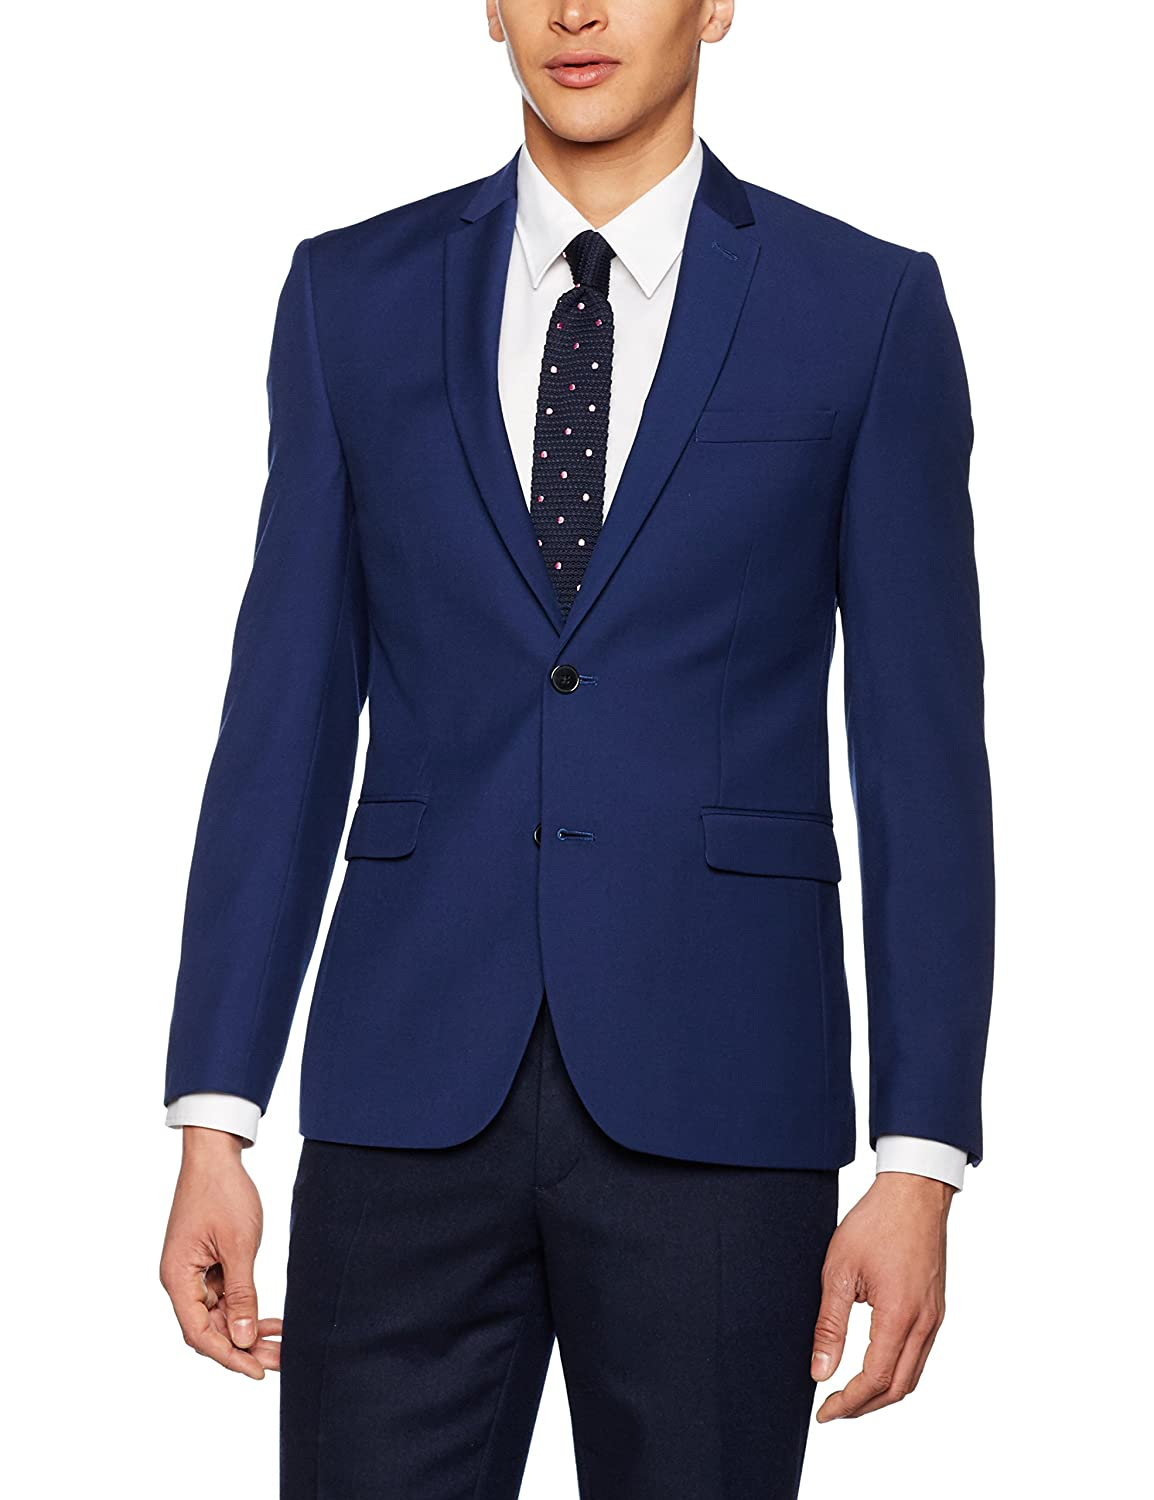 Burton Menswear London Men's Essential Suit Jacket 02S34JBLU